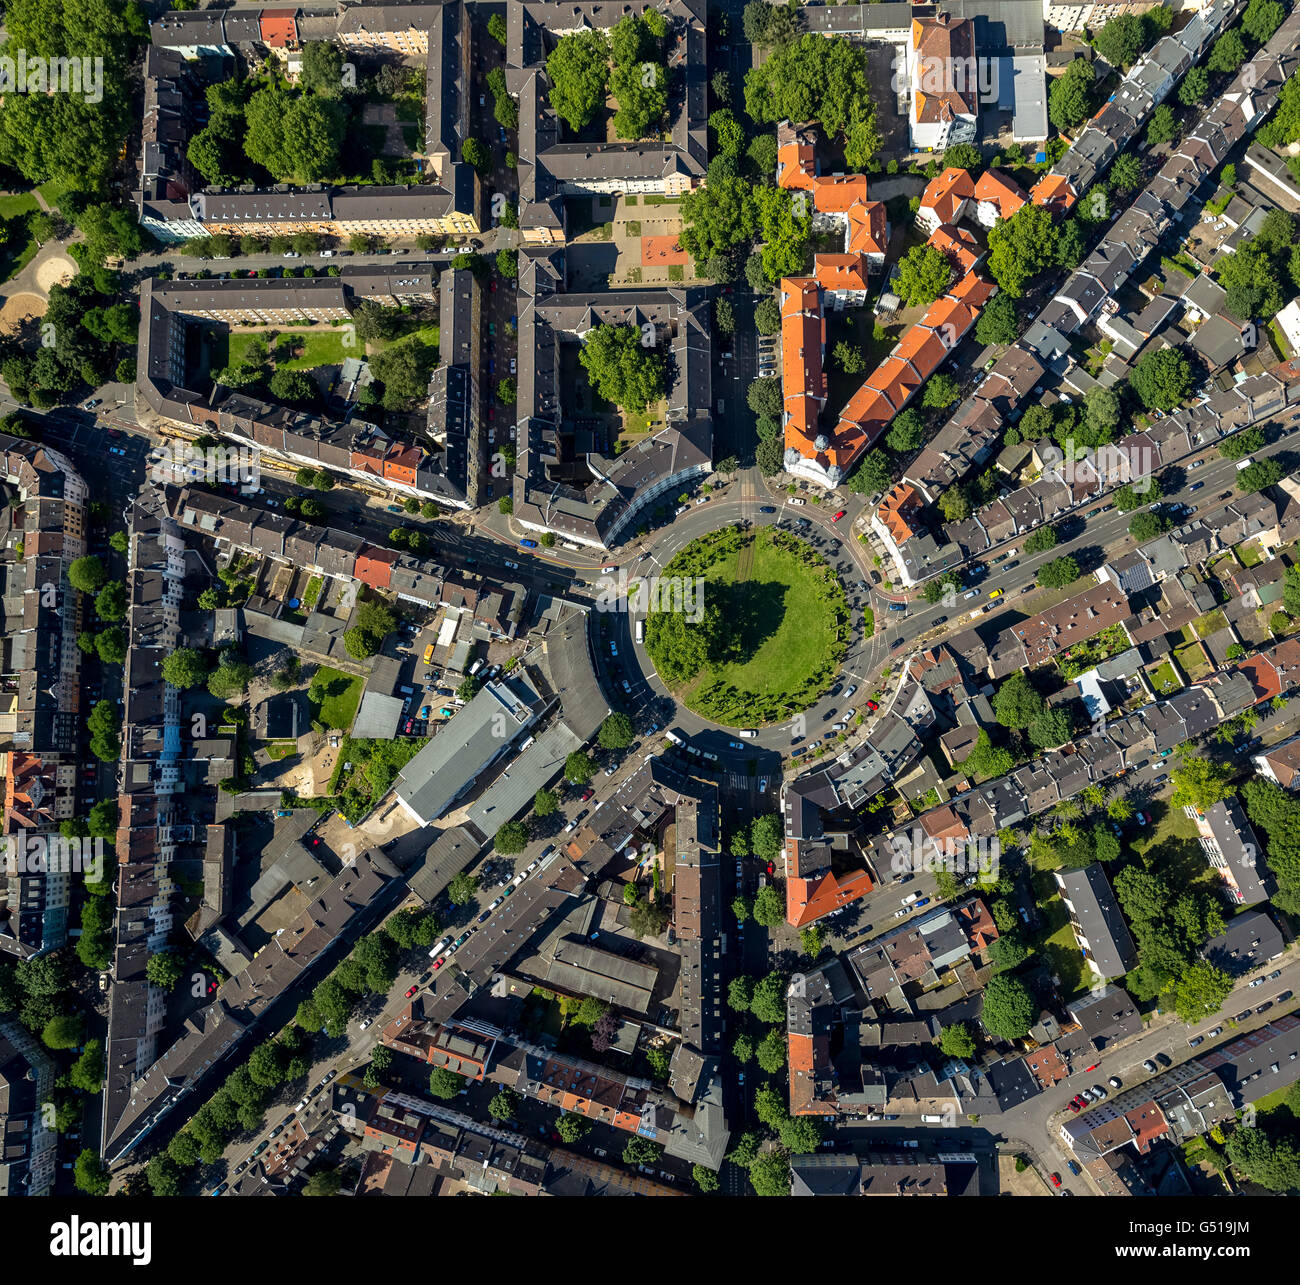 Aerial View Borsigplatz Dortmund Vertical Photographs Cradle Of BVB Ruhr Region North Rhine Westphalia